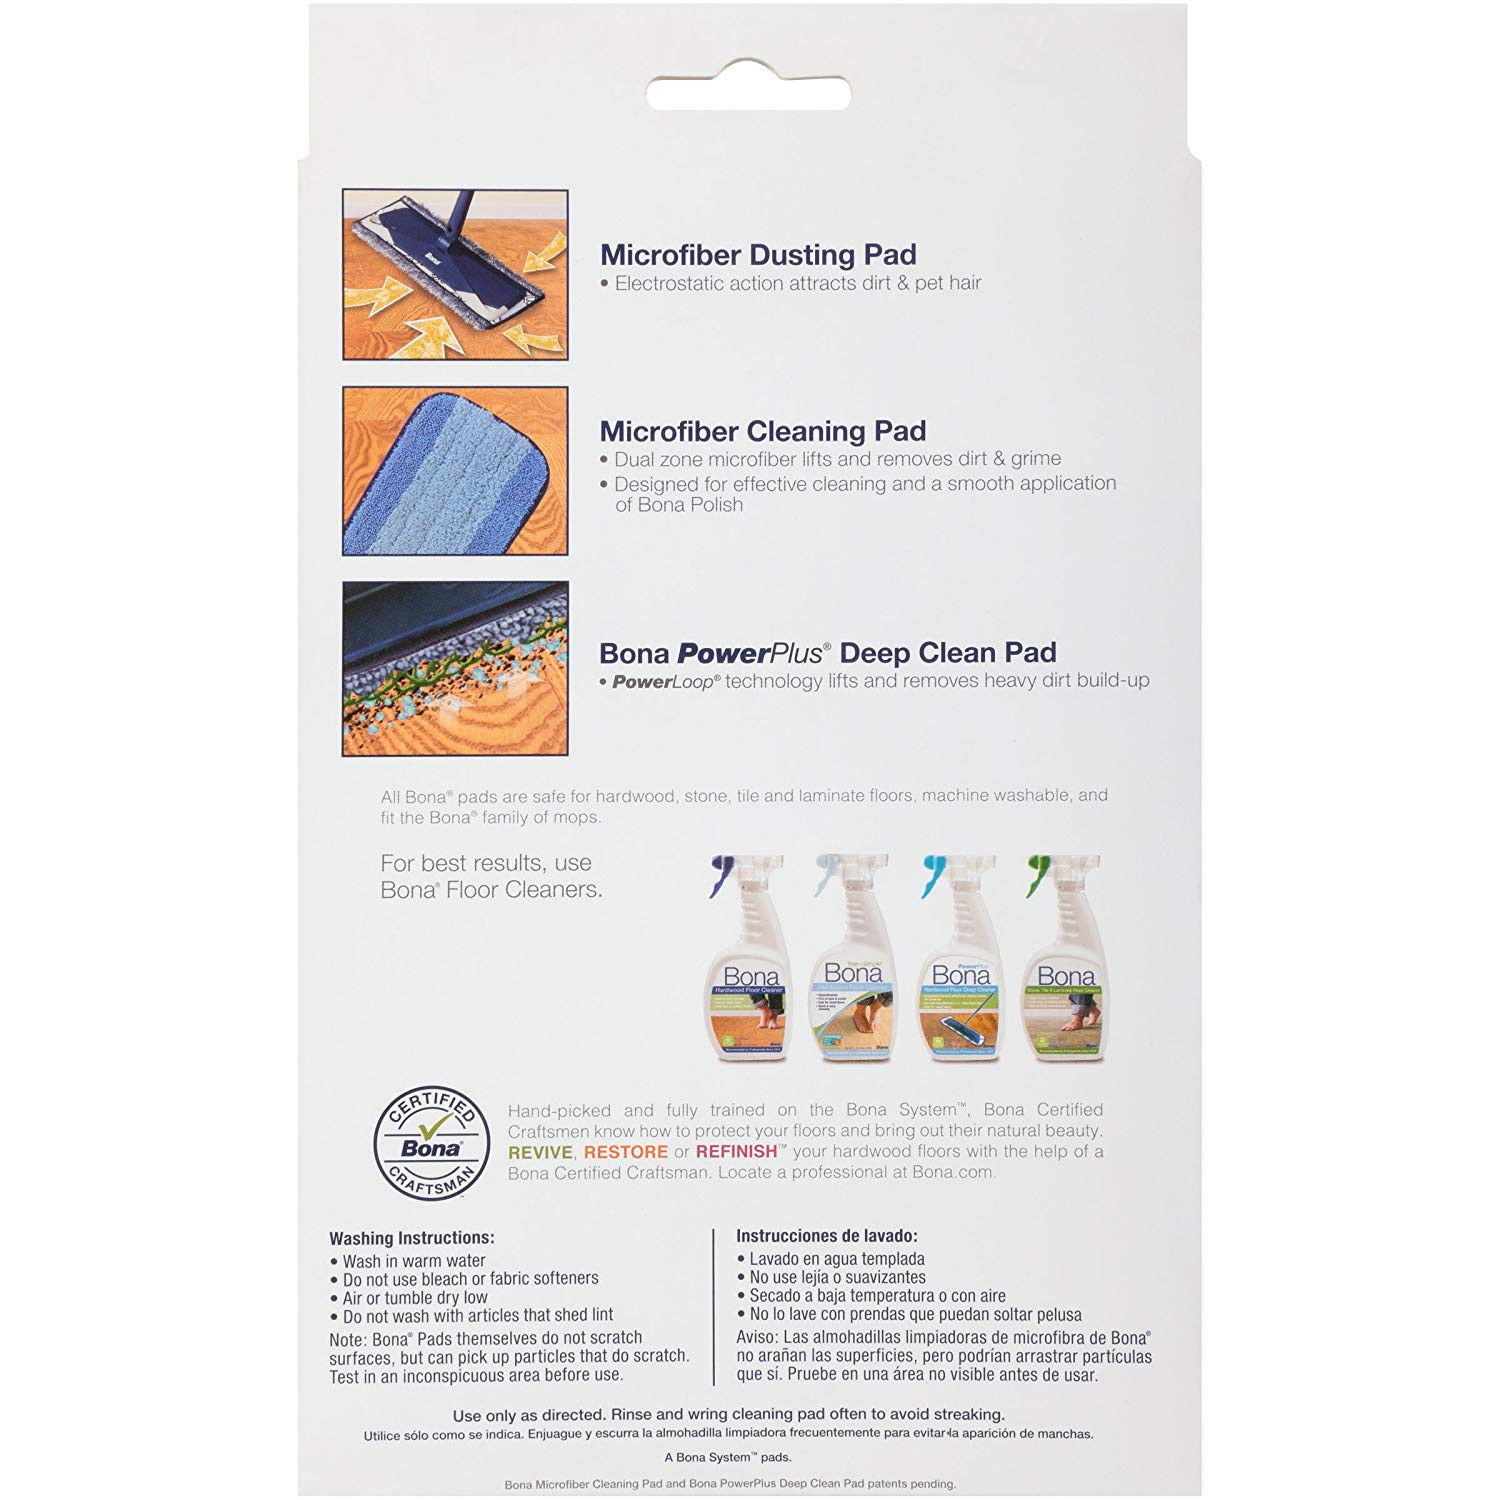 hardwood floor cleaning pads of amazon com bona 3 piece microfiber pad pack home kitchen with regard to 81kp7f4vi9l sl1500